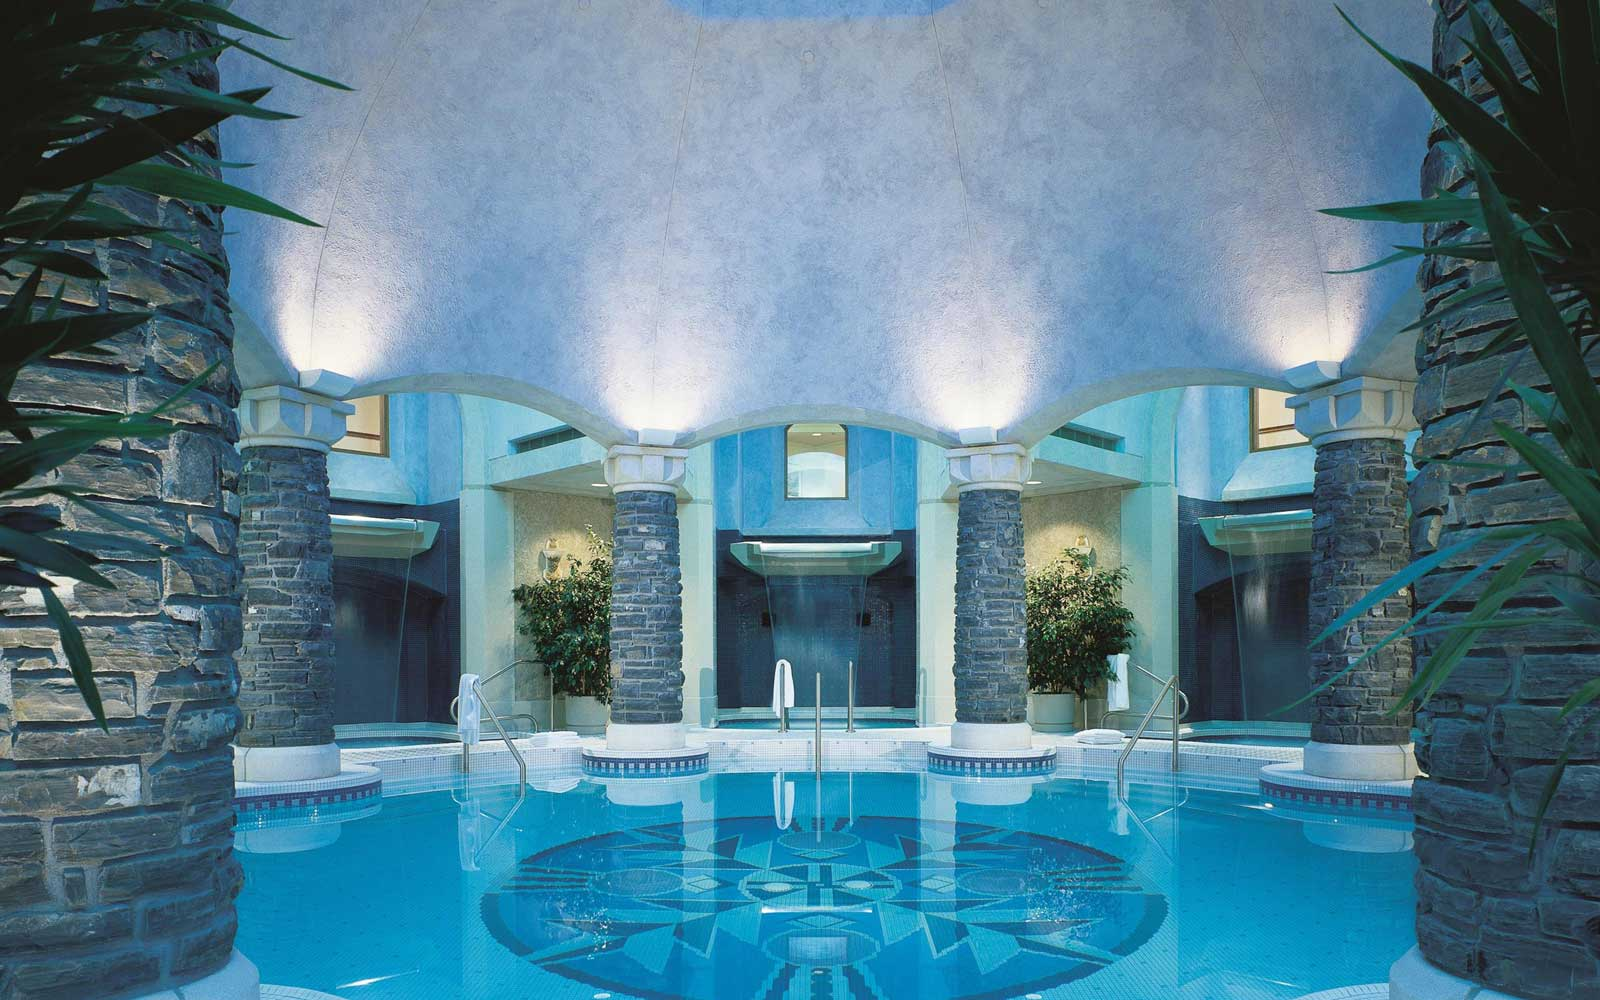 The Willow Steam Spa at Fairmont Banff Springs: Banff, Canada